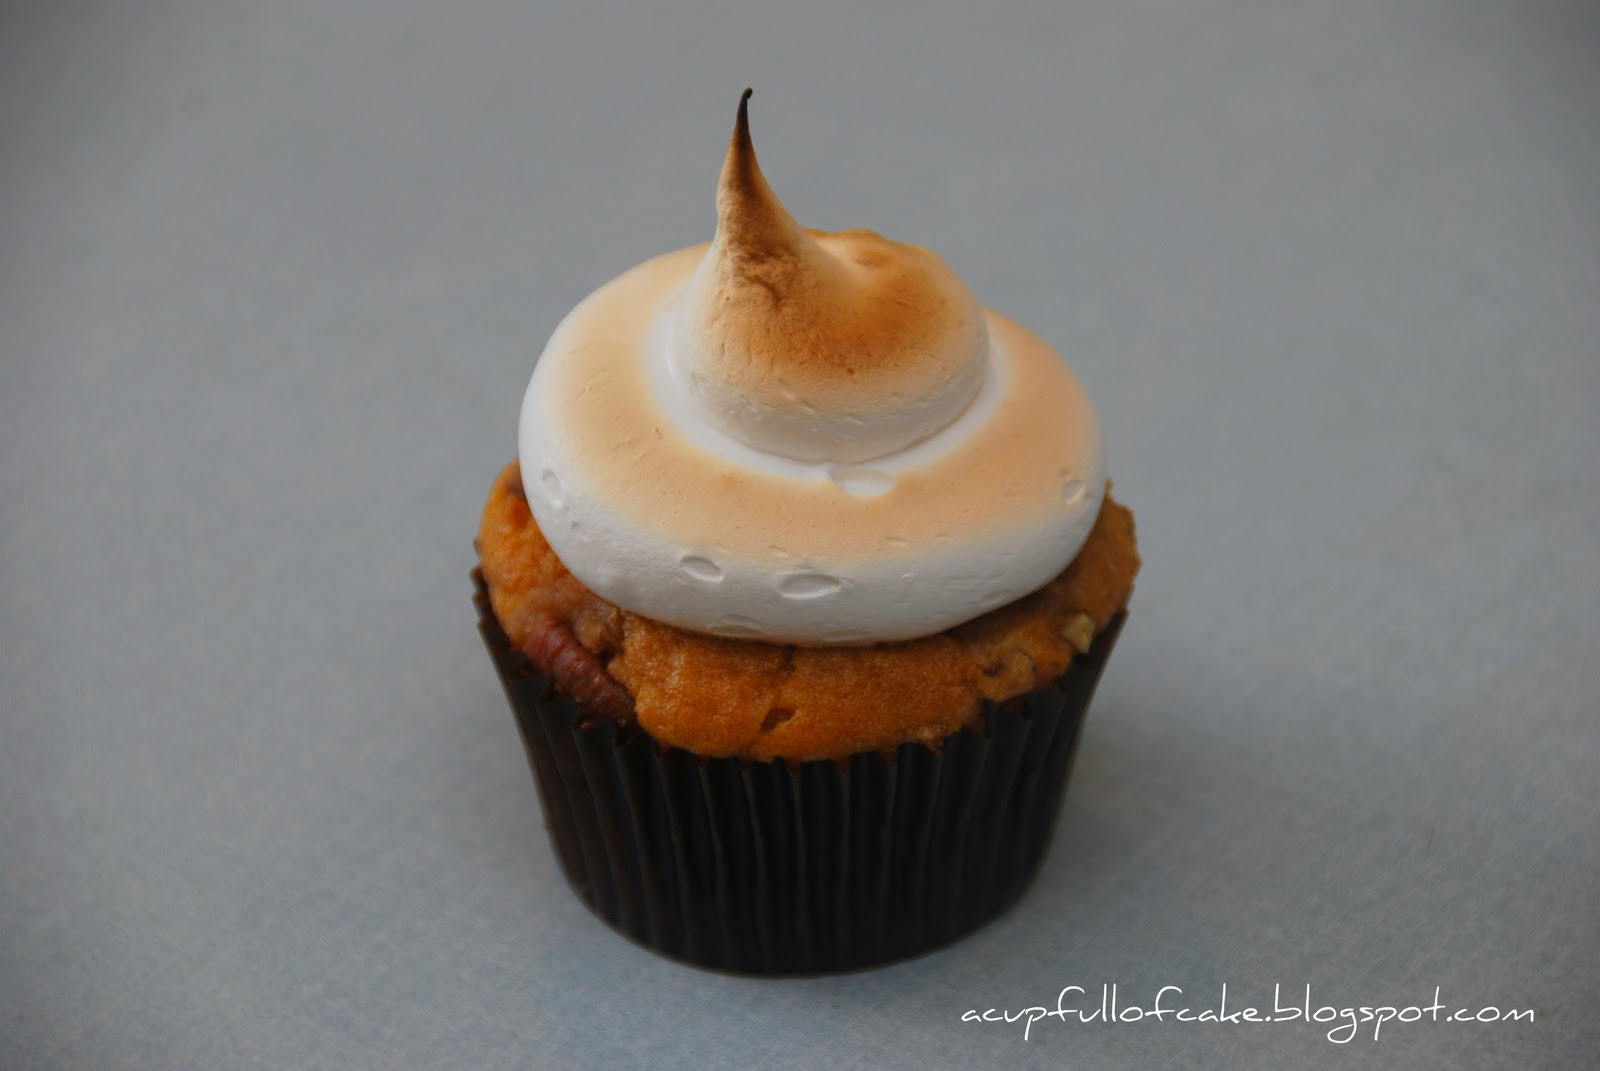 Full of Cake: Sweet potato cupcakes with pecan streusel and toasted ...